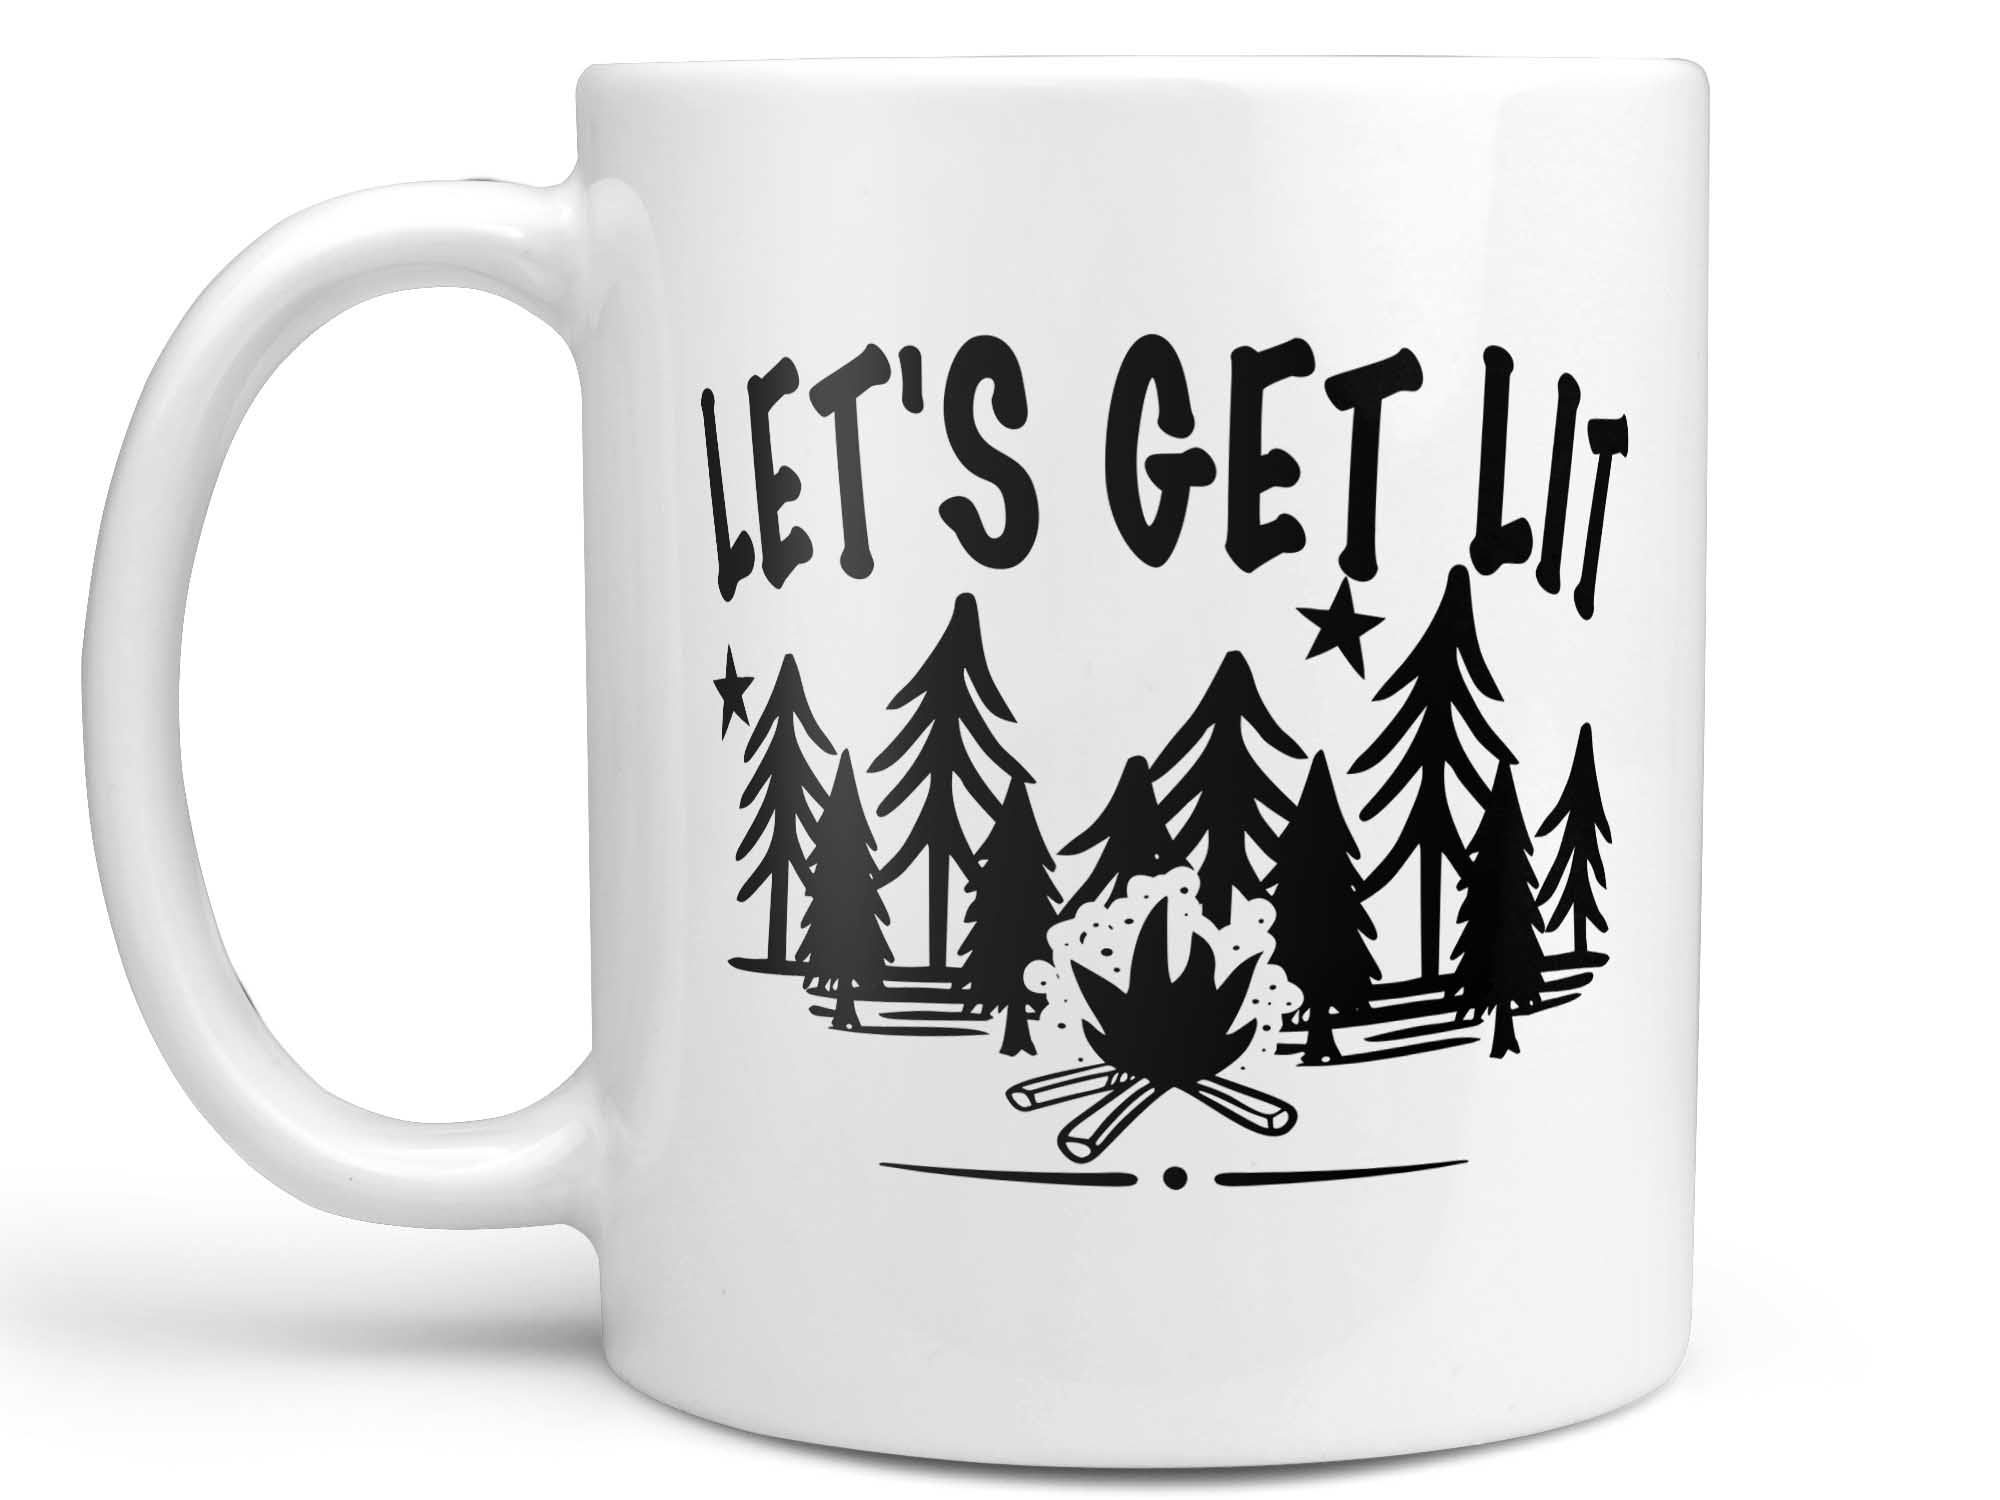 Let's Get Lit Camping Coffee Mug,Coffee Mugs Never Lie,Coffee Mug